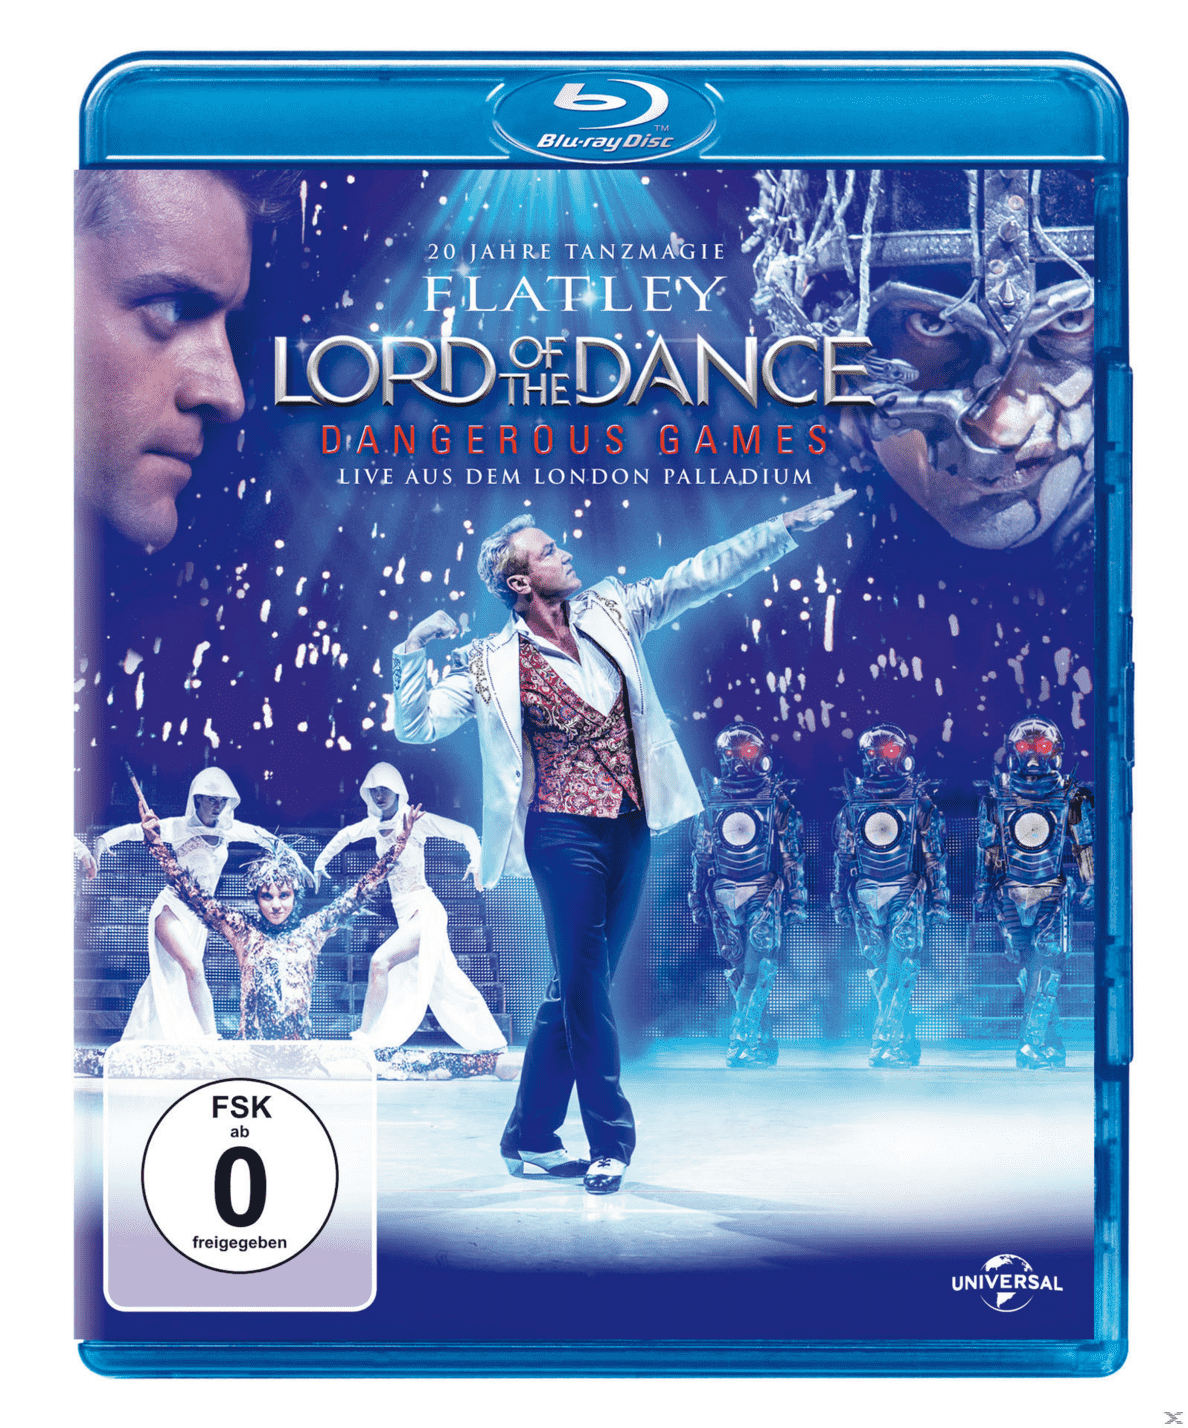 Lord Of The Dance - Dangerous Games auf Blu-ray